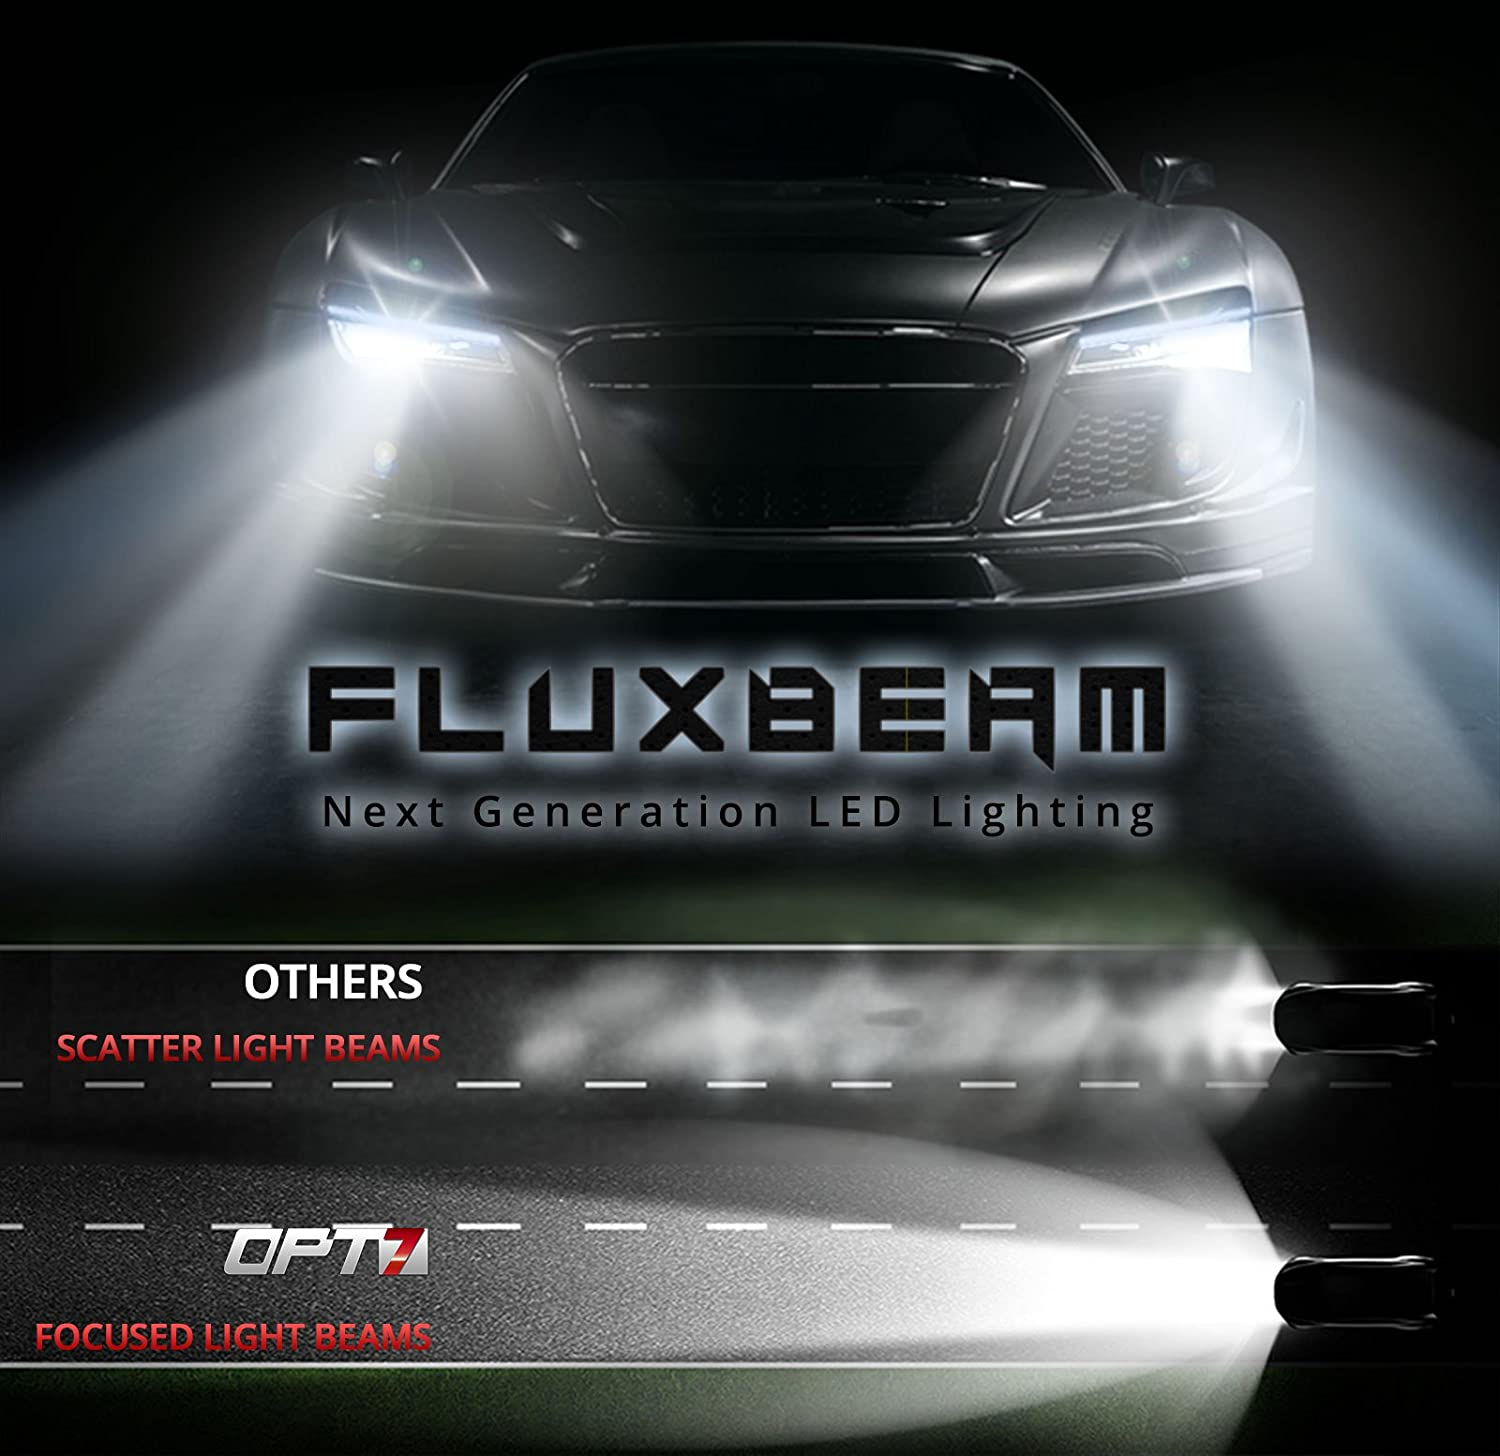 Opt7 Fluxbeam 9005 Led Headlight Kit W Clear Arc Beam Exciting Scout Crafts 1 Or 2 Headlamp Bulbs 60w 7000lm 6k Cool White Cree Yr Warranty Automotive